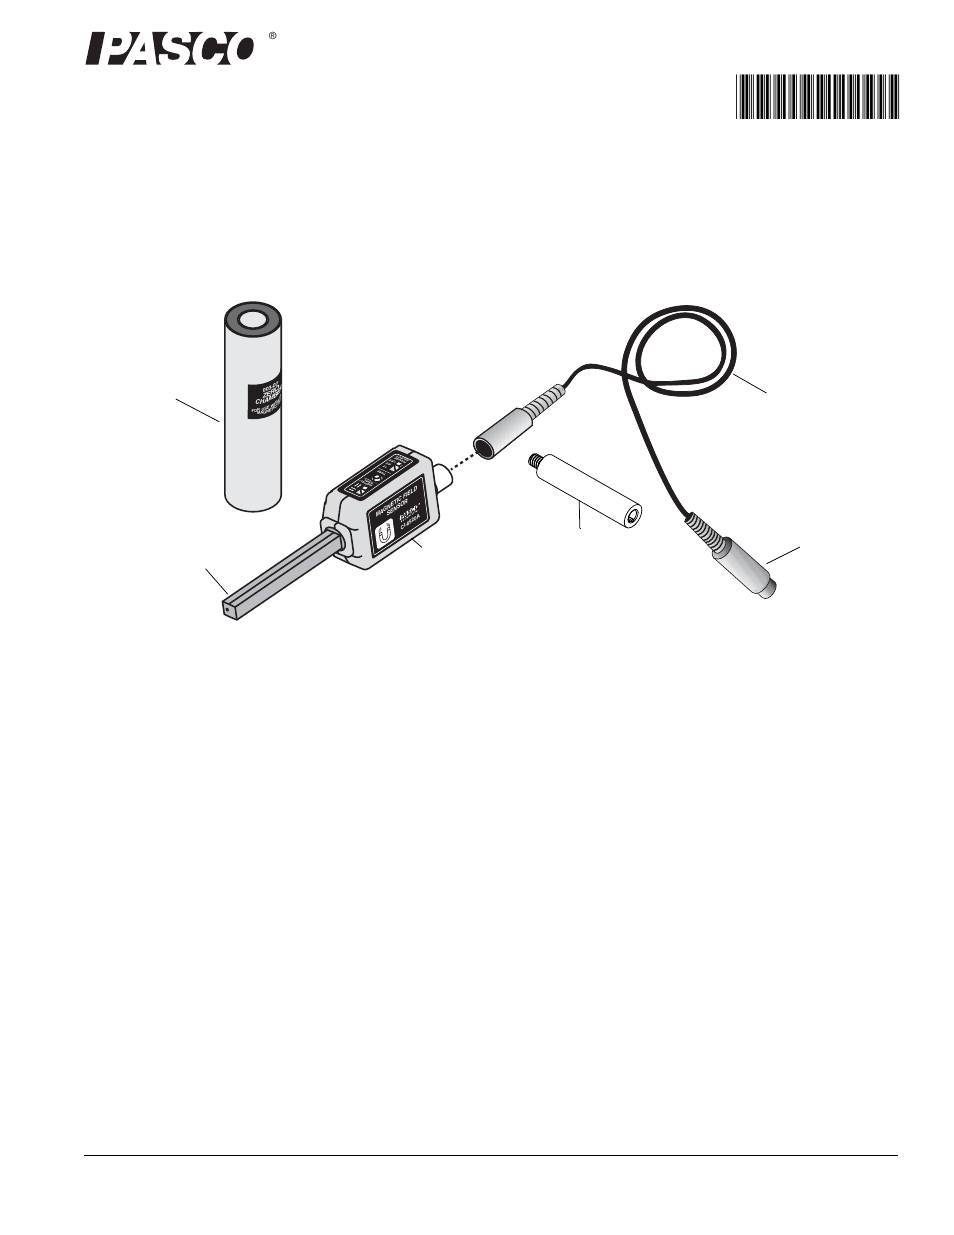 Sensitive Electromagnetic Field Sensor